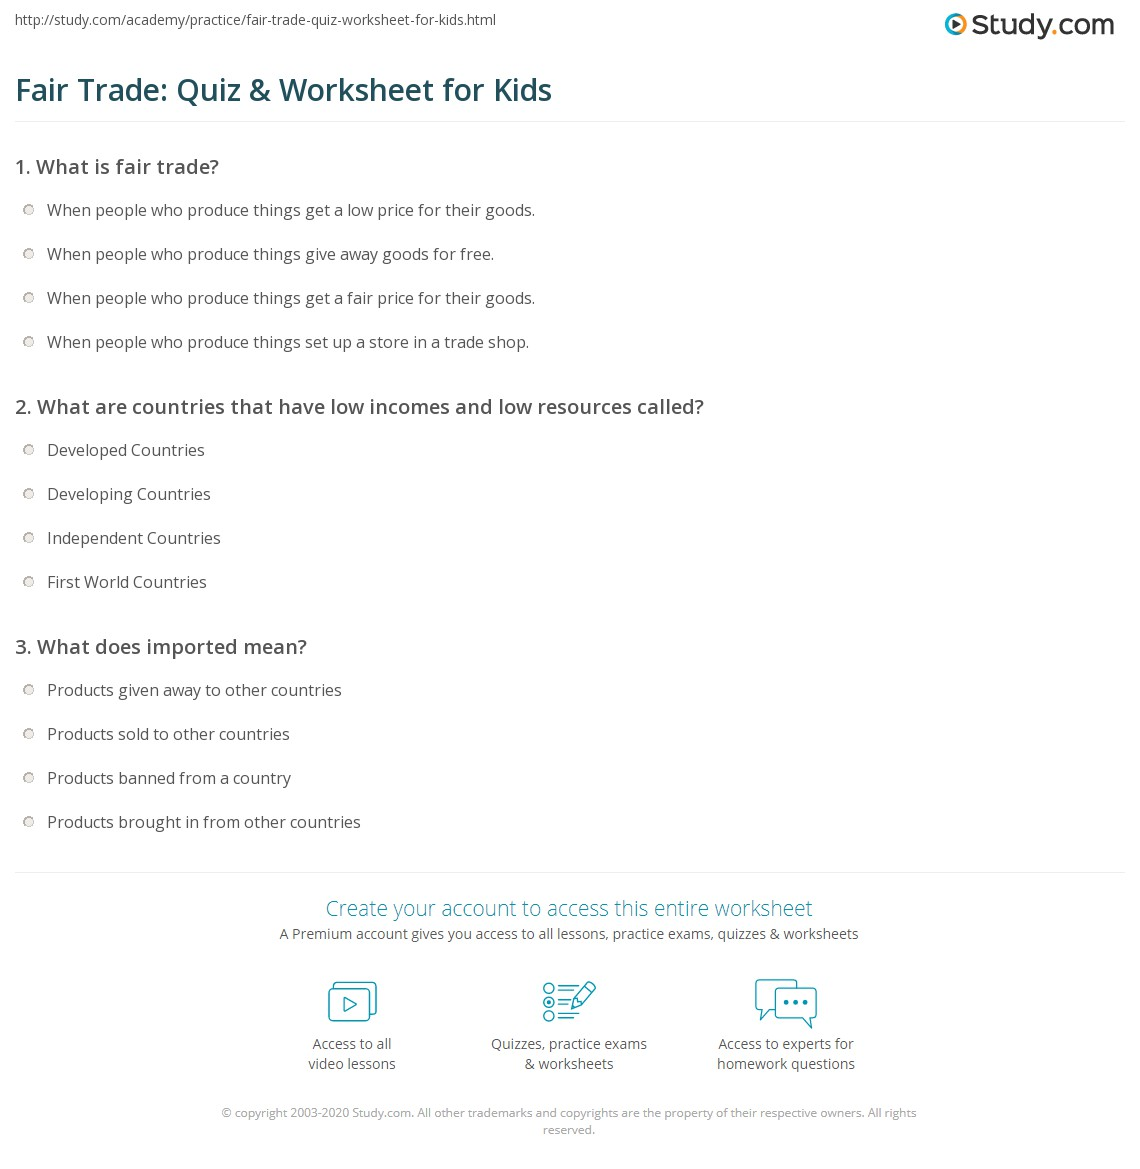 fair trade: quiz & worksheet for kids | study